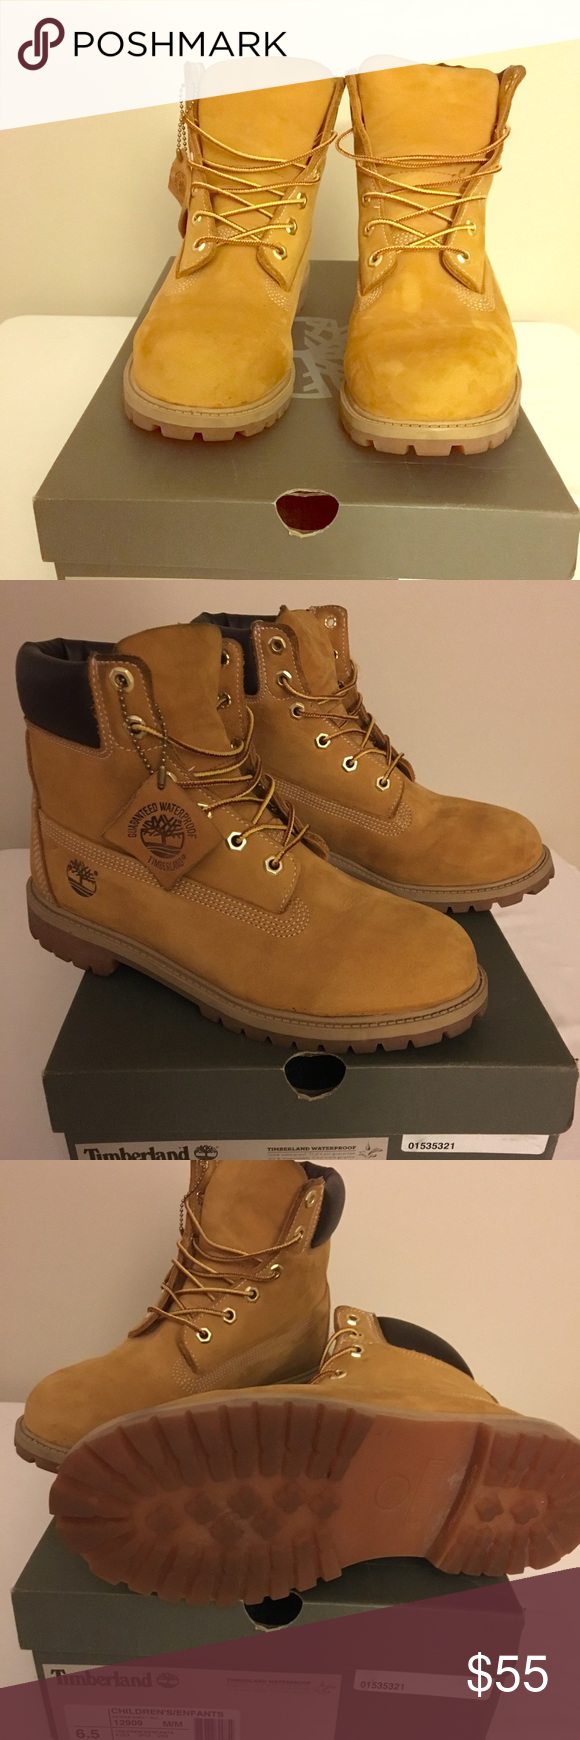 Kids' Clothes, Shoes & Accs. Kids Timberland Boots Size 6.5 Clothes, Shoes & Accessories